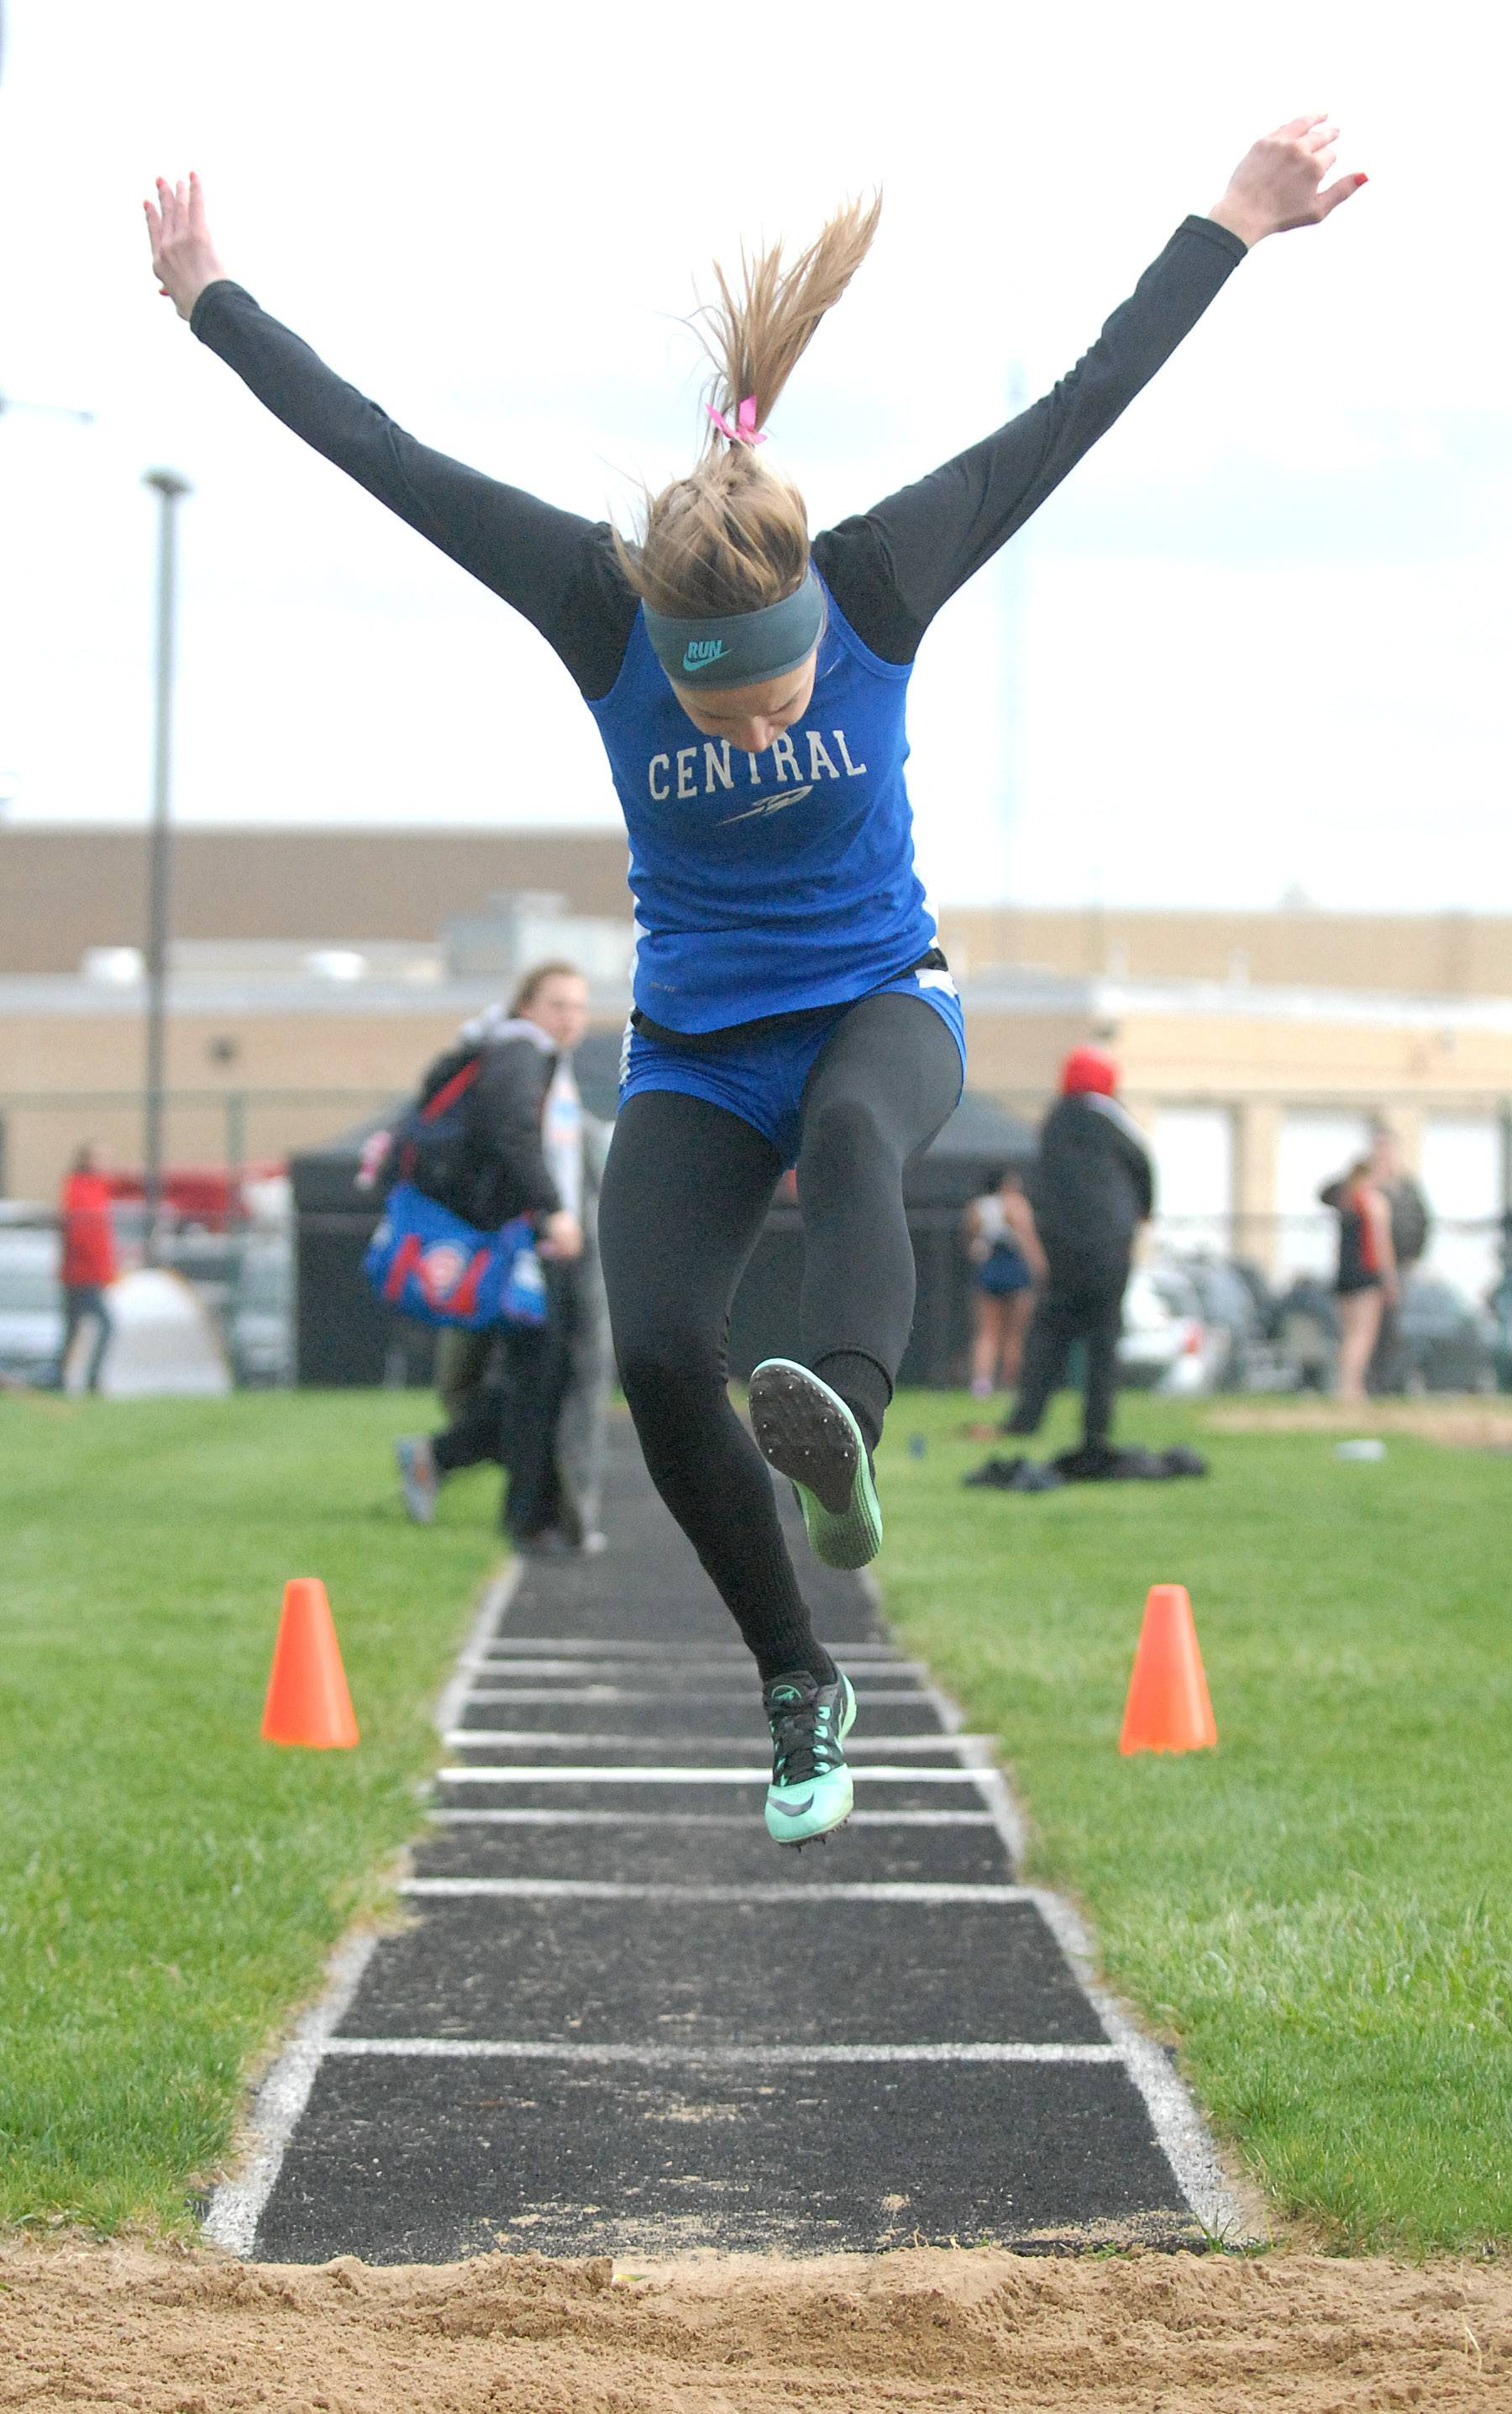 Burlington Central's Karli Chmelik in the triple jump finals at Kaneland High School in Maple Park on Friday, May 2.